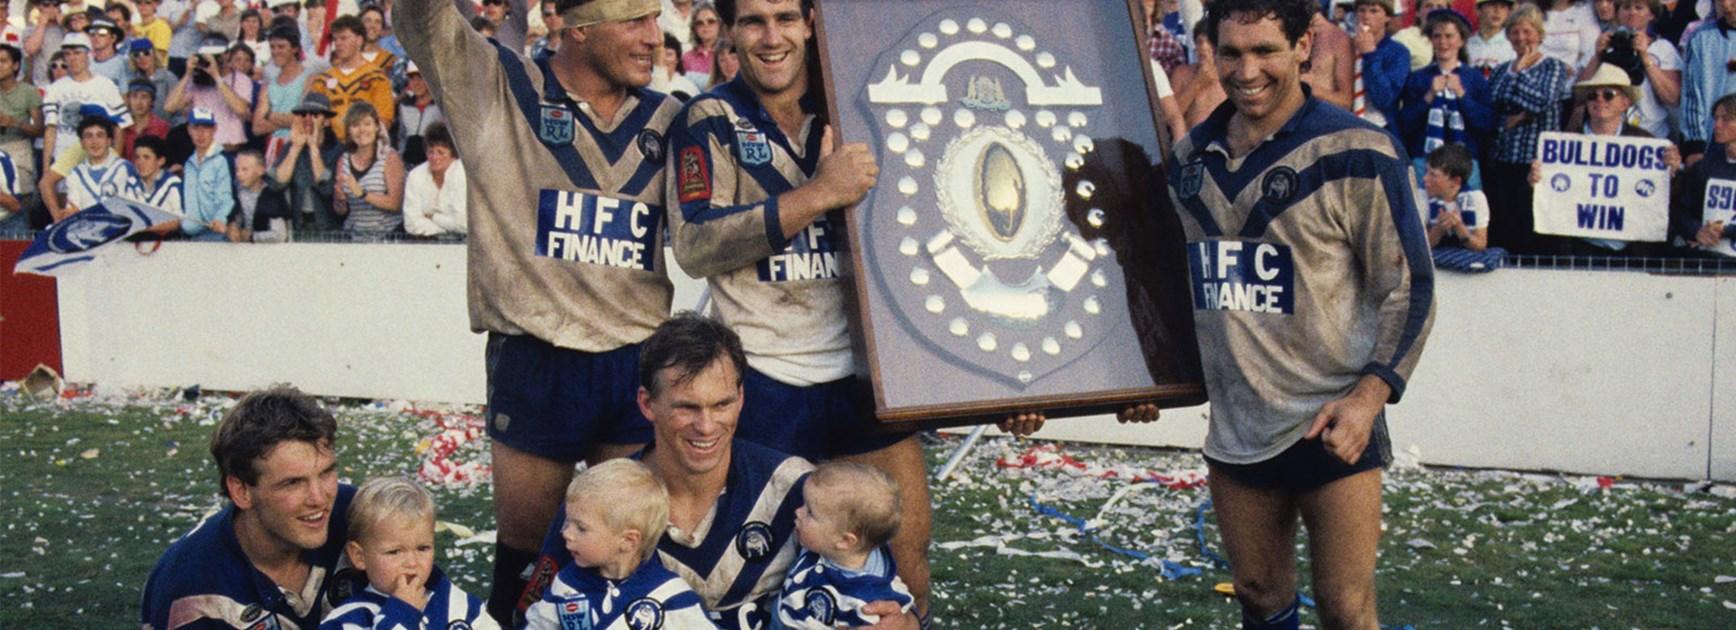 Bulldogs players celebrate their 1985 Grand Final victory.